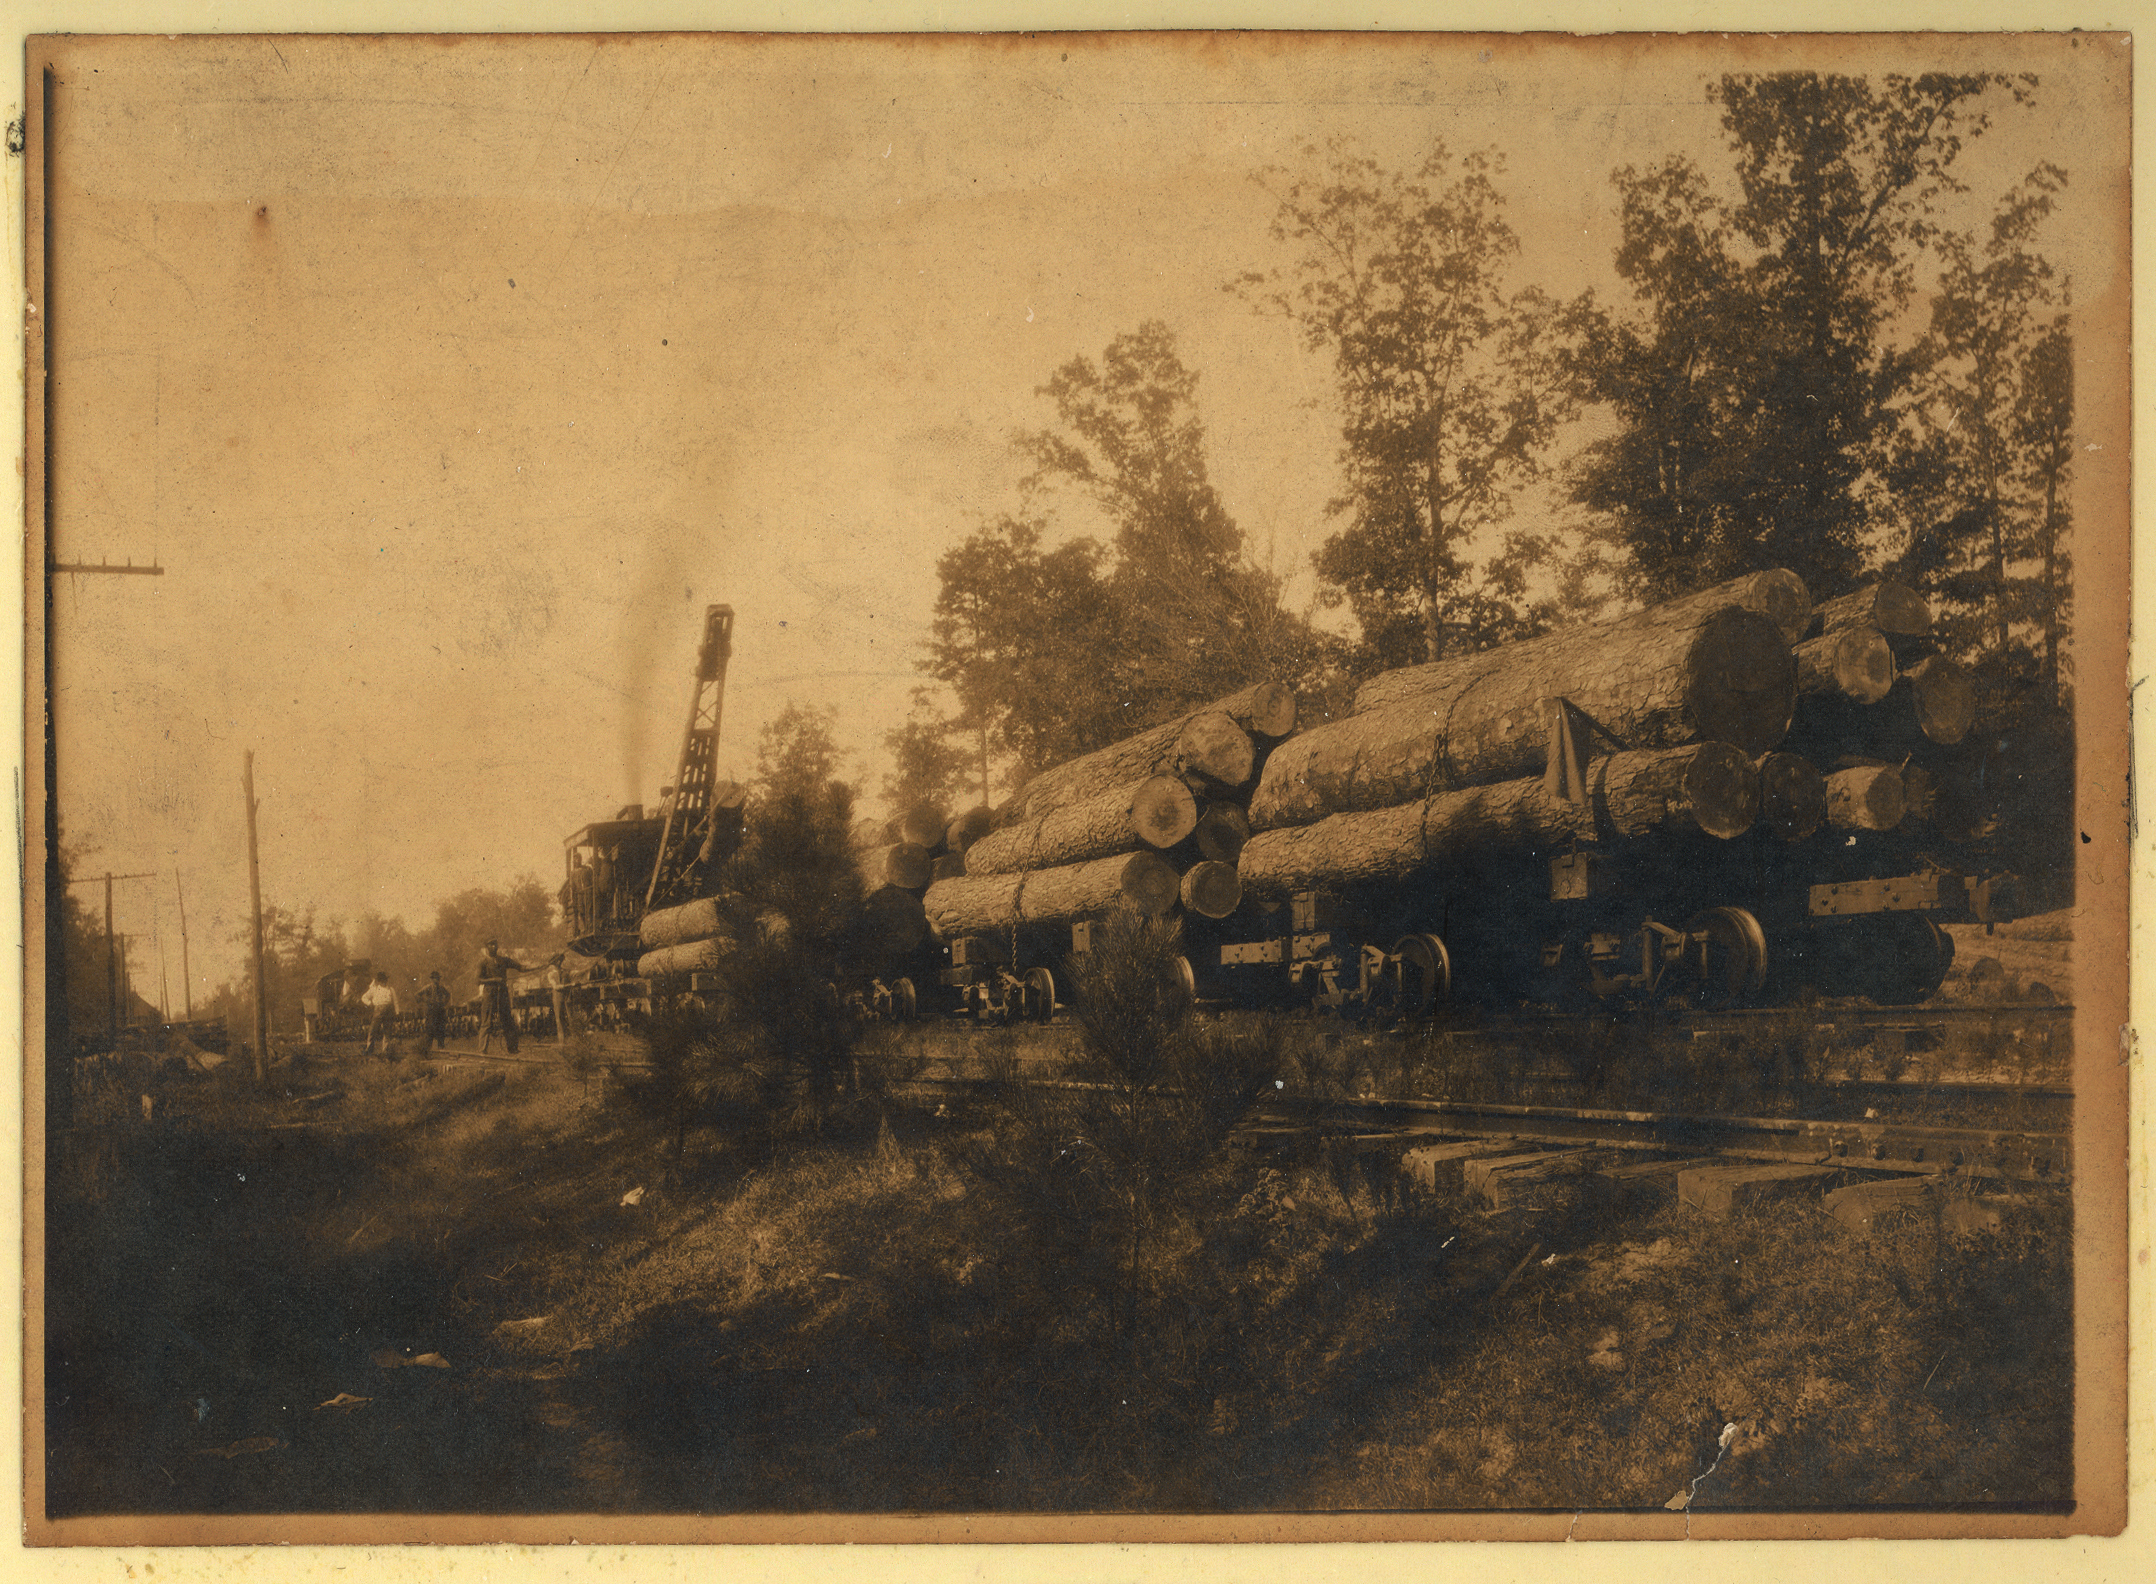 Train with Logs (1903)